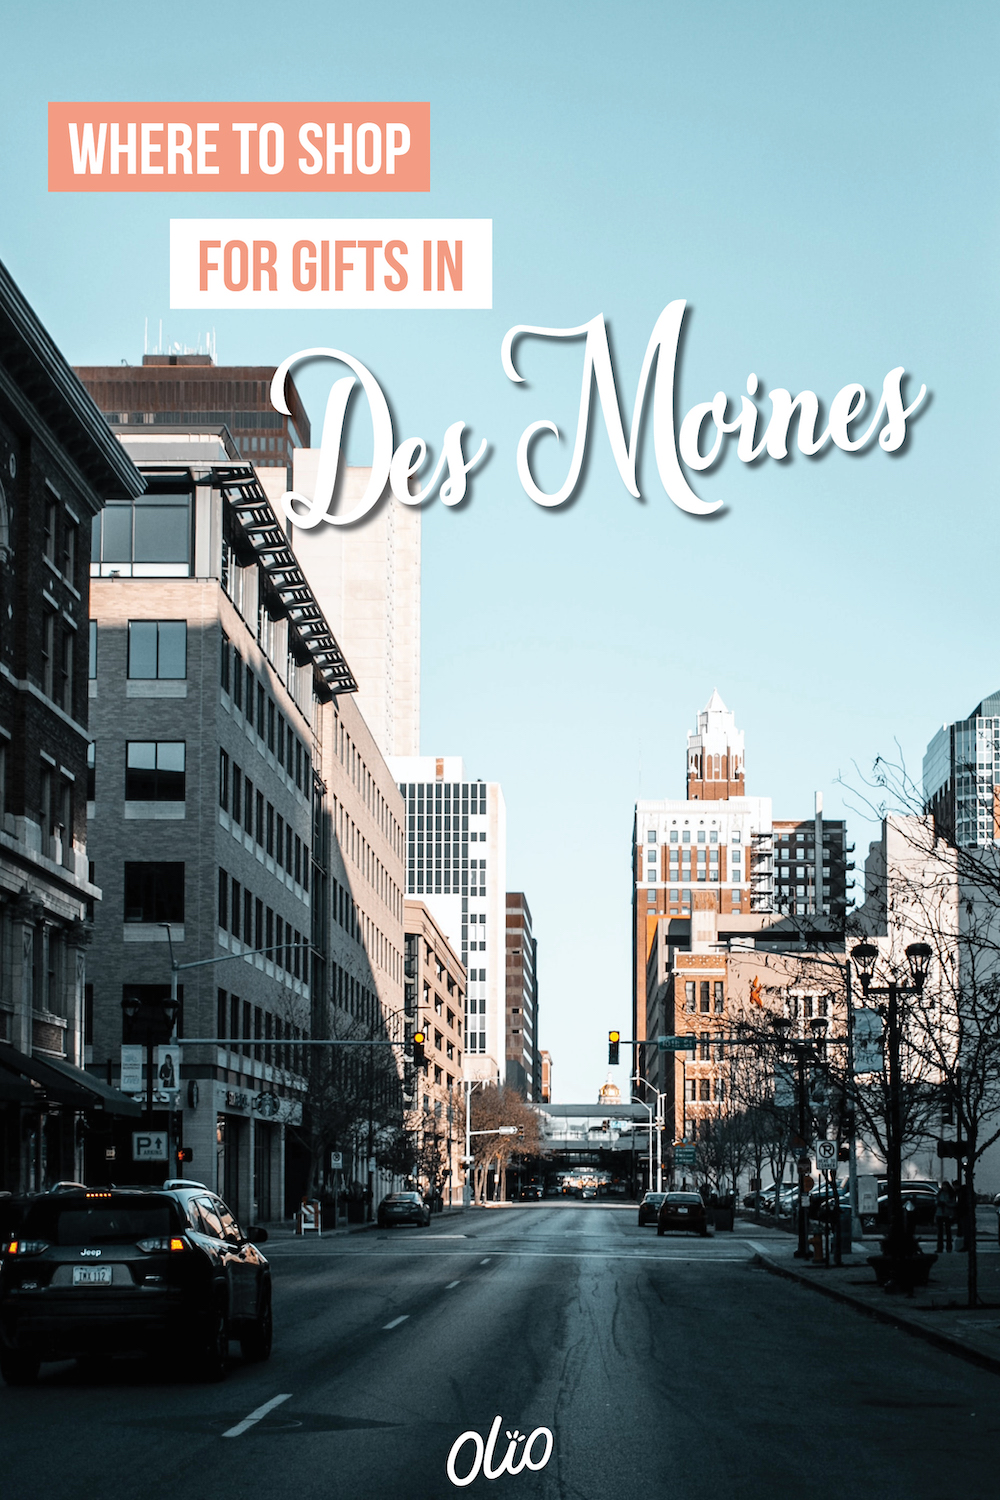 Want to shop local but not sure where to start? Find the perfect present for any person or occasion at this incredible collection of places to shop for gifts in Des Moines, Iowa. #DesMoines #Iowa #BuyLocal #ShopSmall